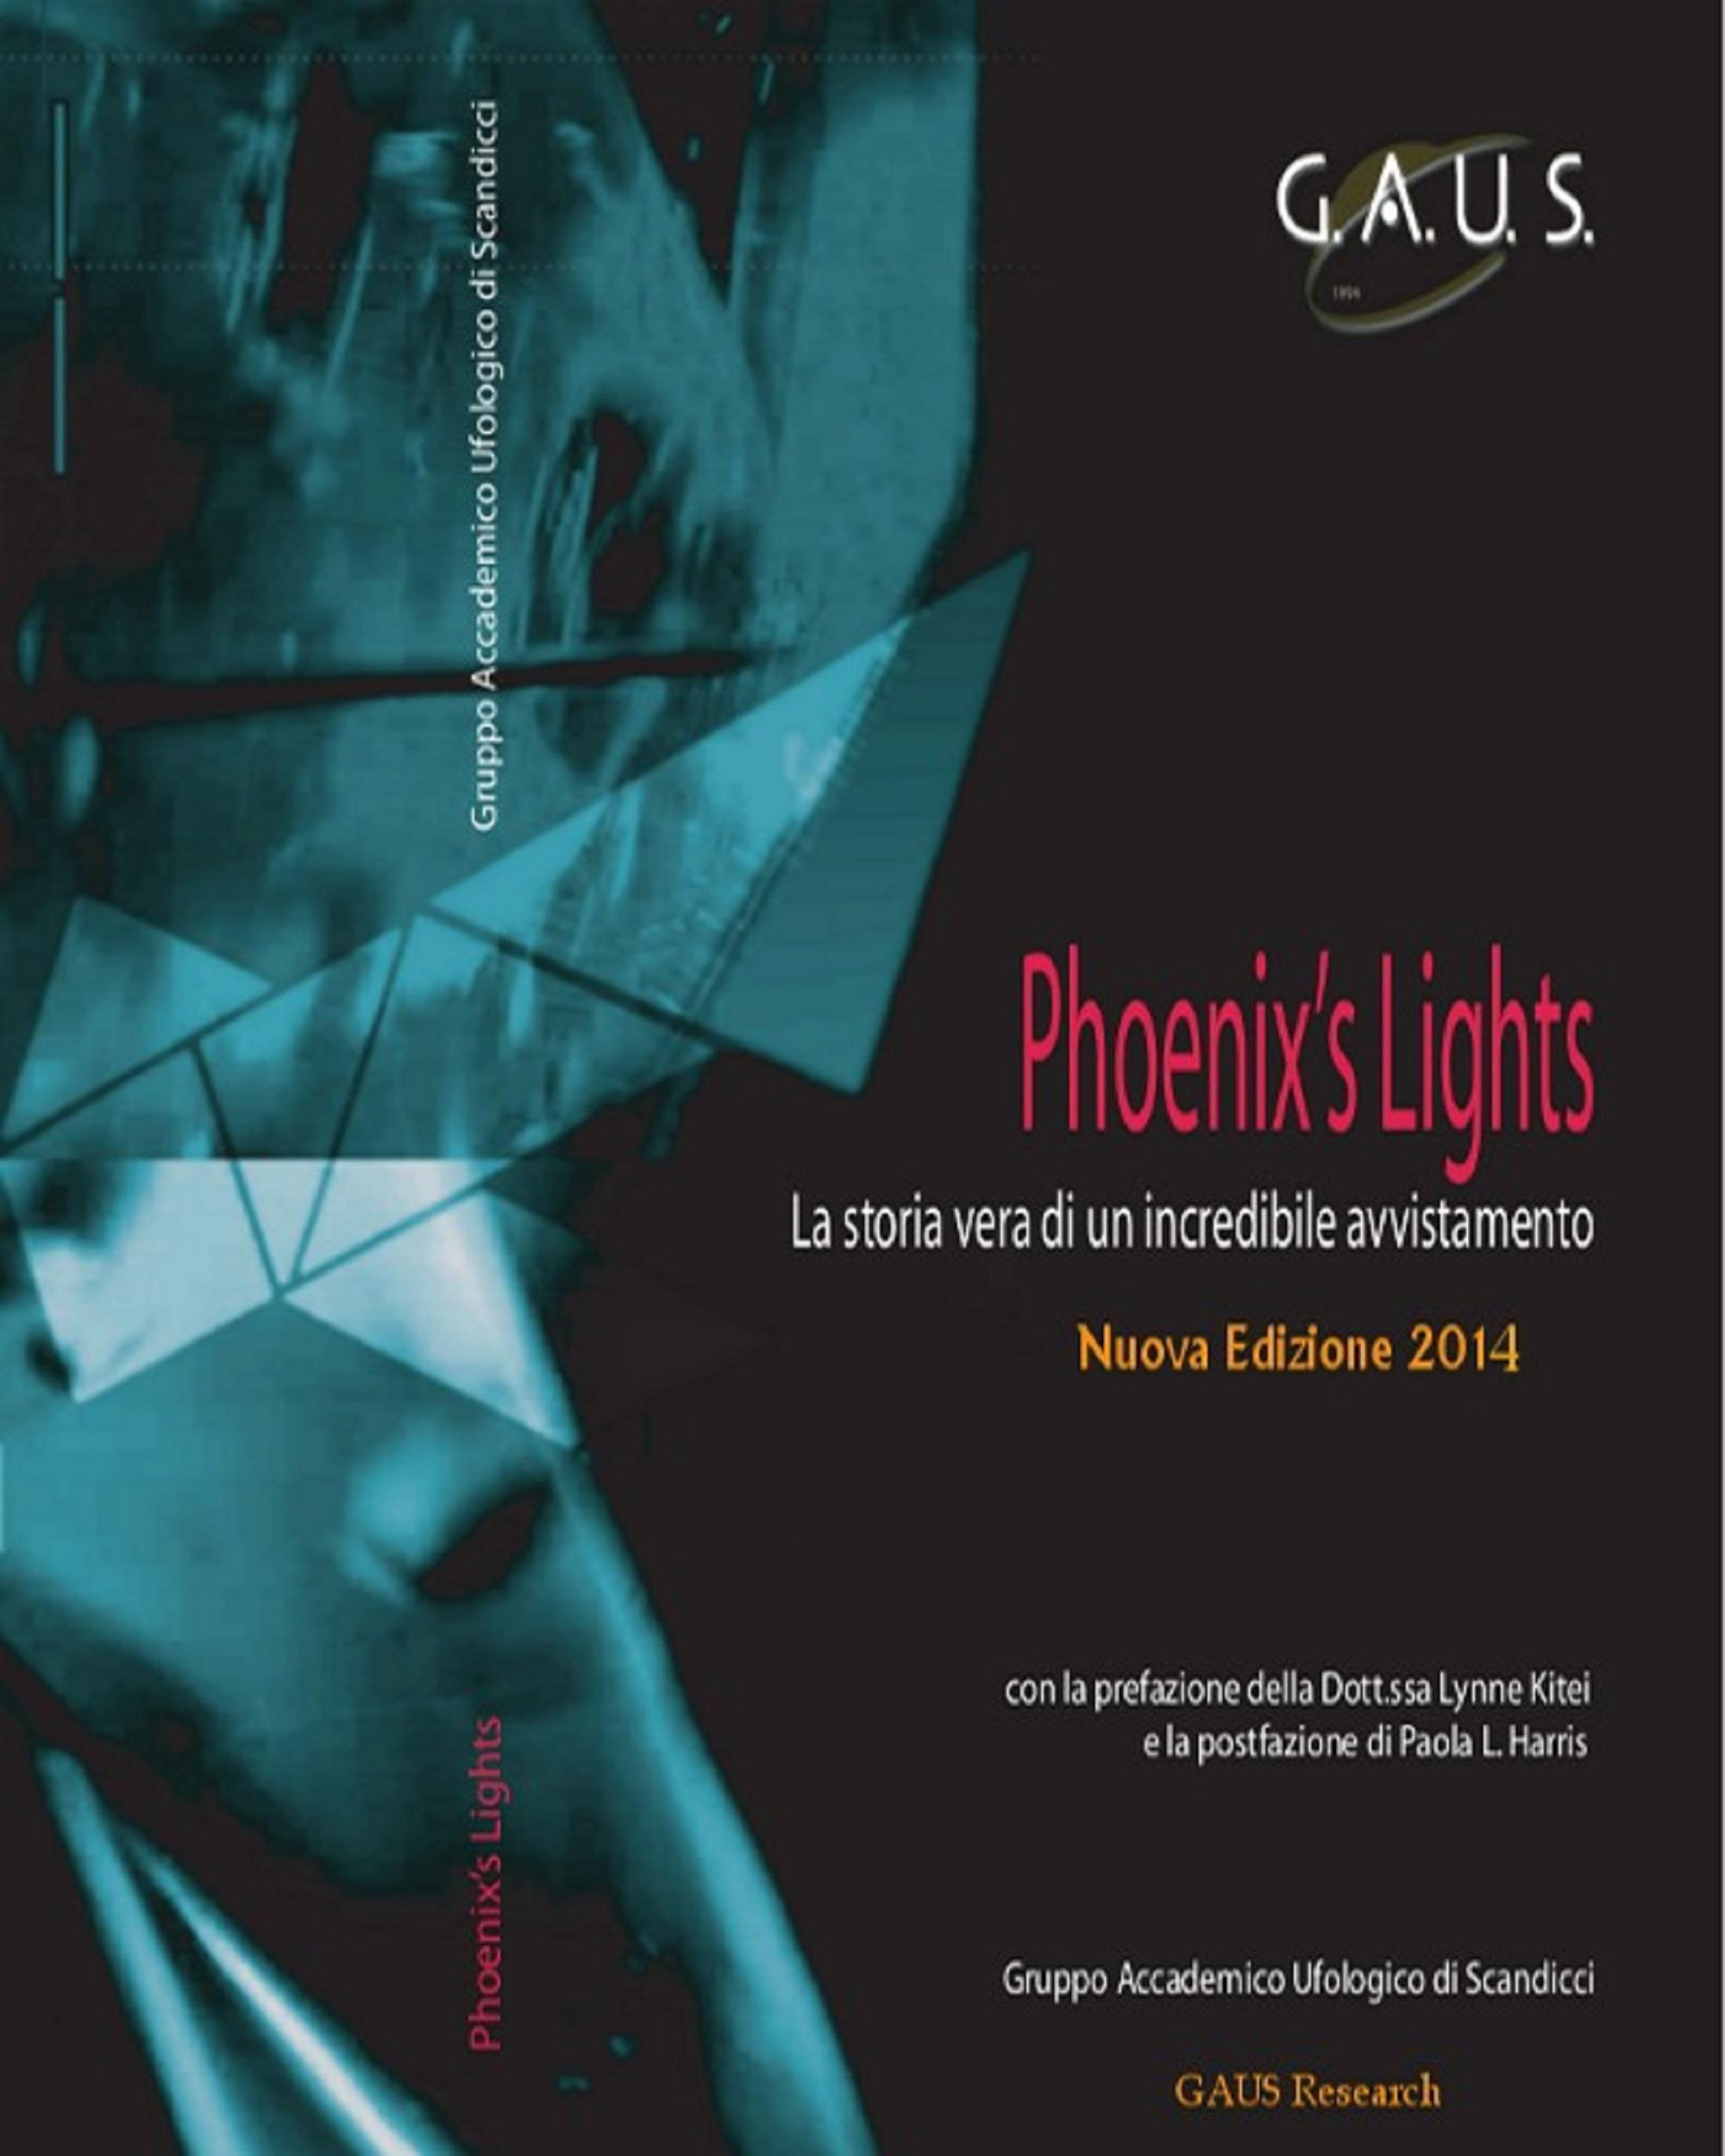 The Phoenix's Lights, la vera storia di un incredibile avvistamento